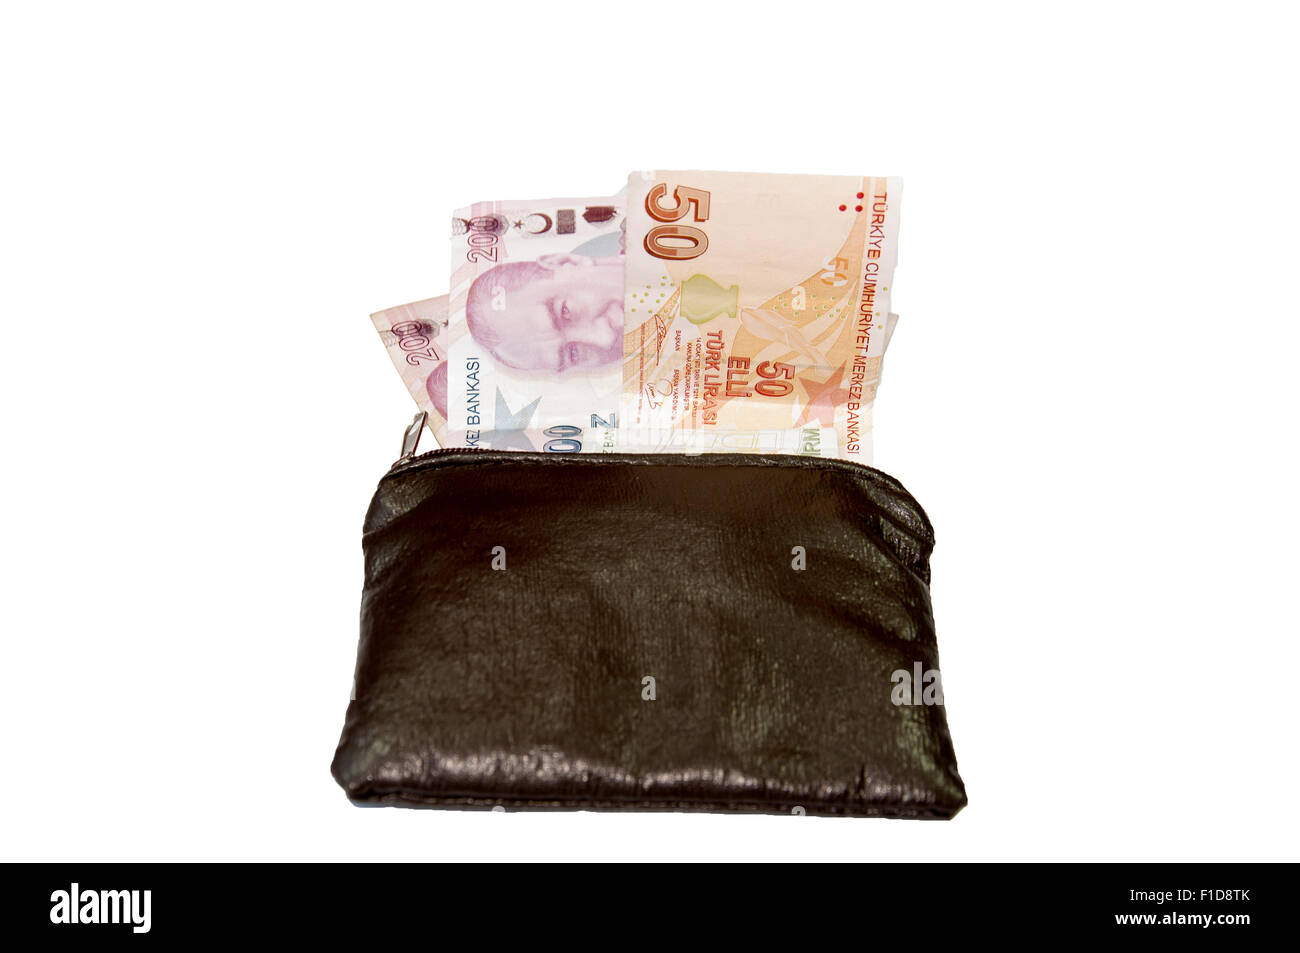 Wallet with Turkish lira on the white background - Stock Image